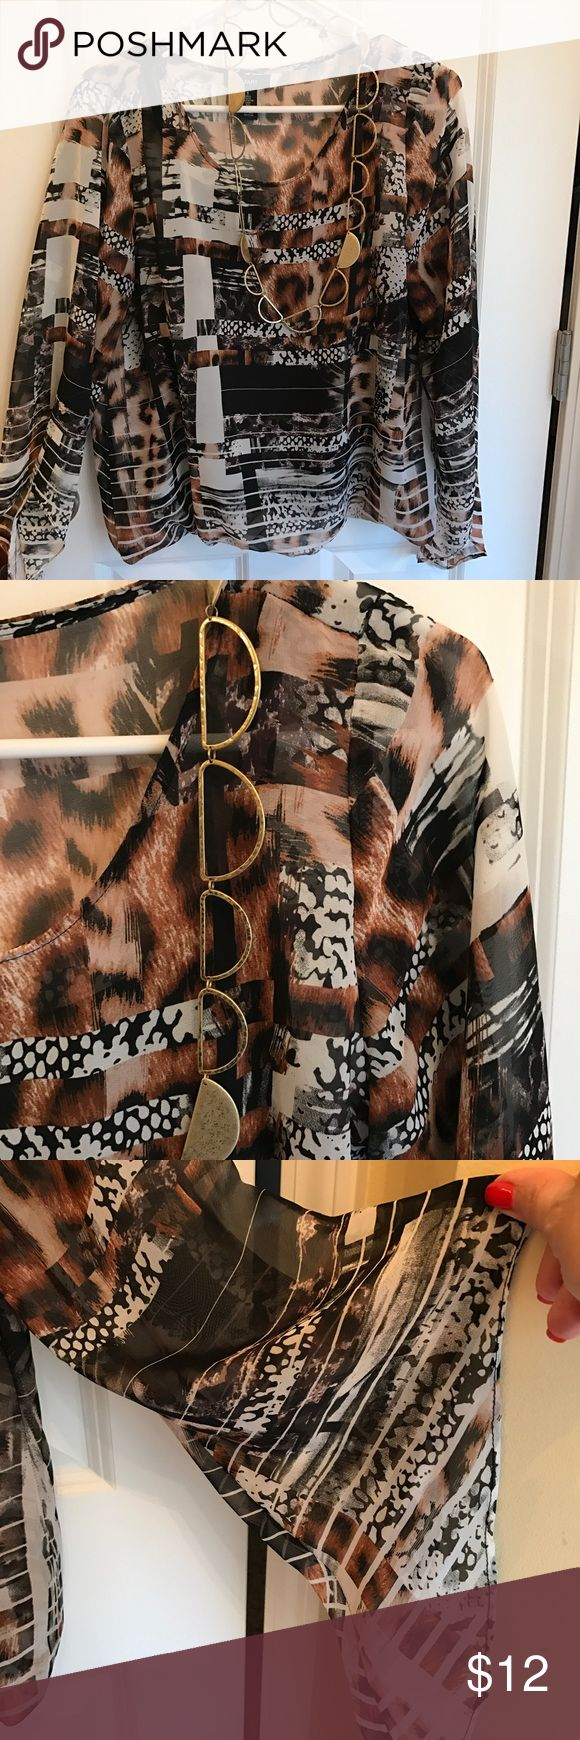 """Animal print sheer blouse with cami 🕶 Beautiful sheer animal print fabric cascades over a black sown in cami☀️. Stylish, cool, very on trend !  Blouse measures approx 20"""" with bell sleeves to drape your arm. Very pretty! Alfani Tops Blouses"""